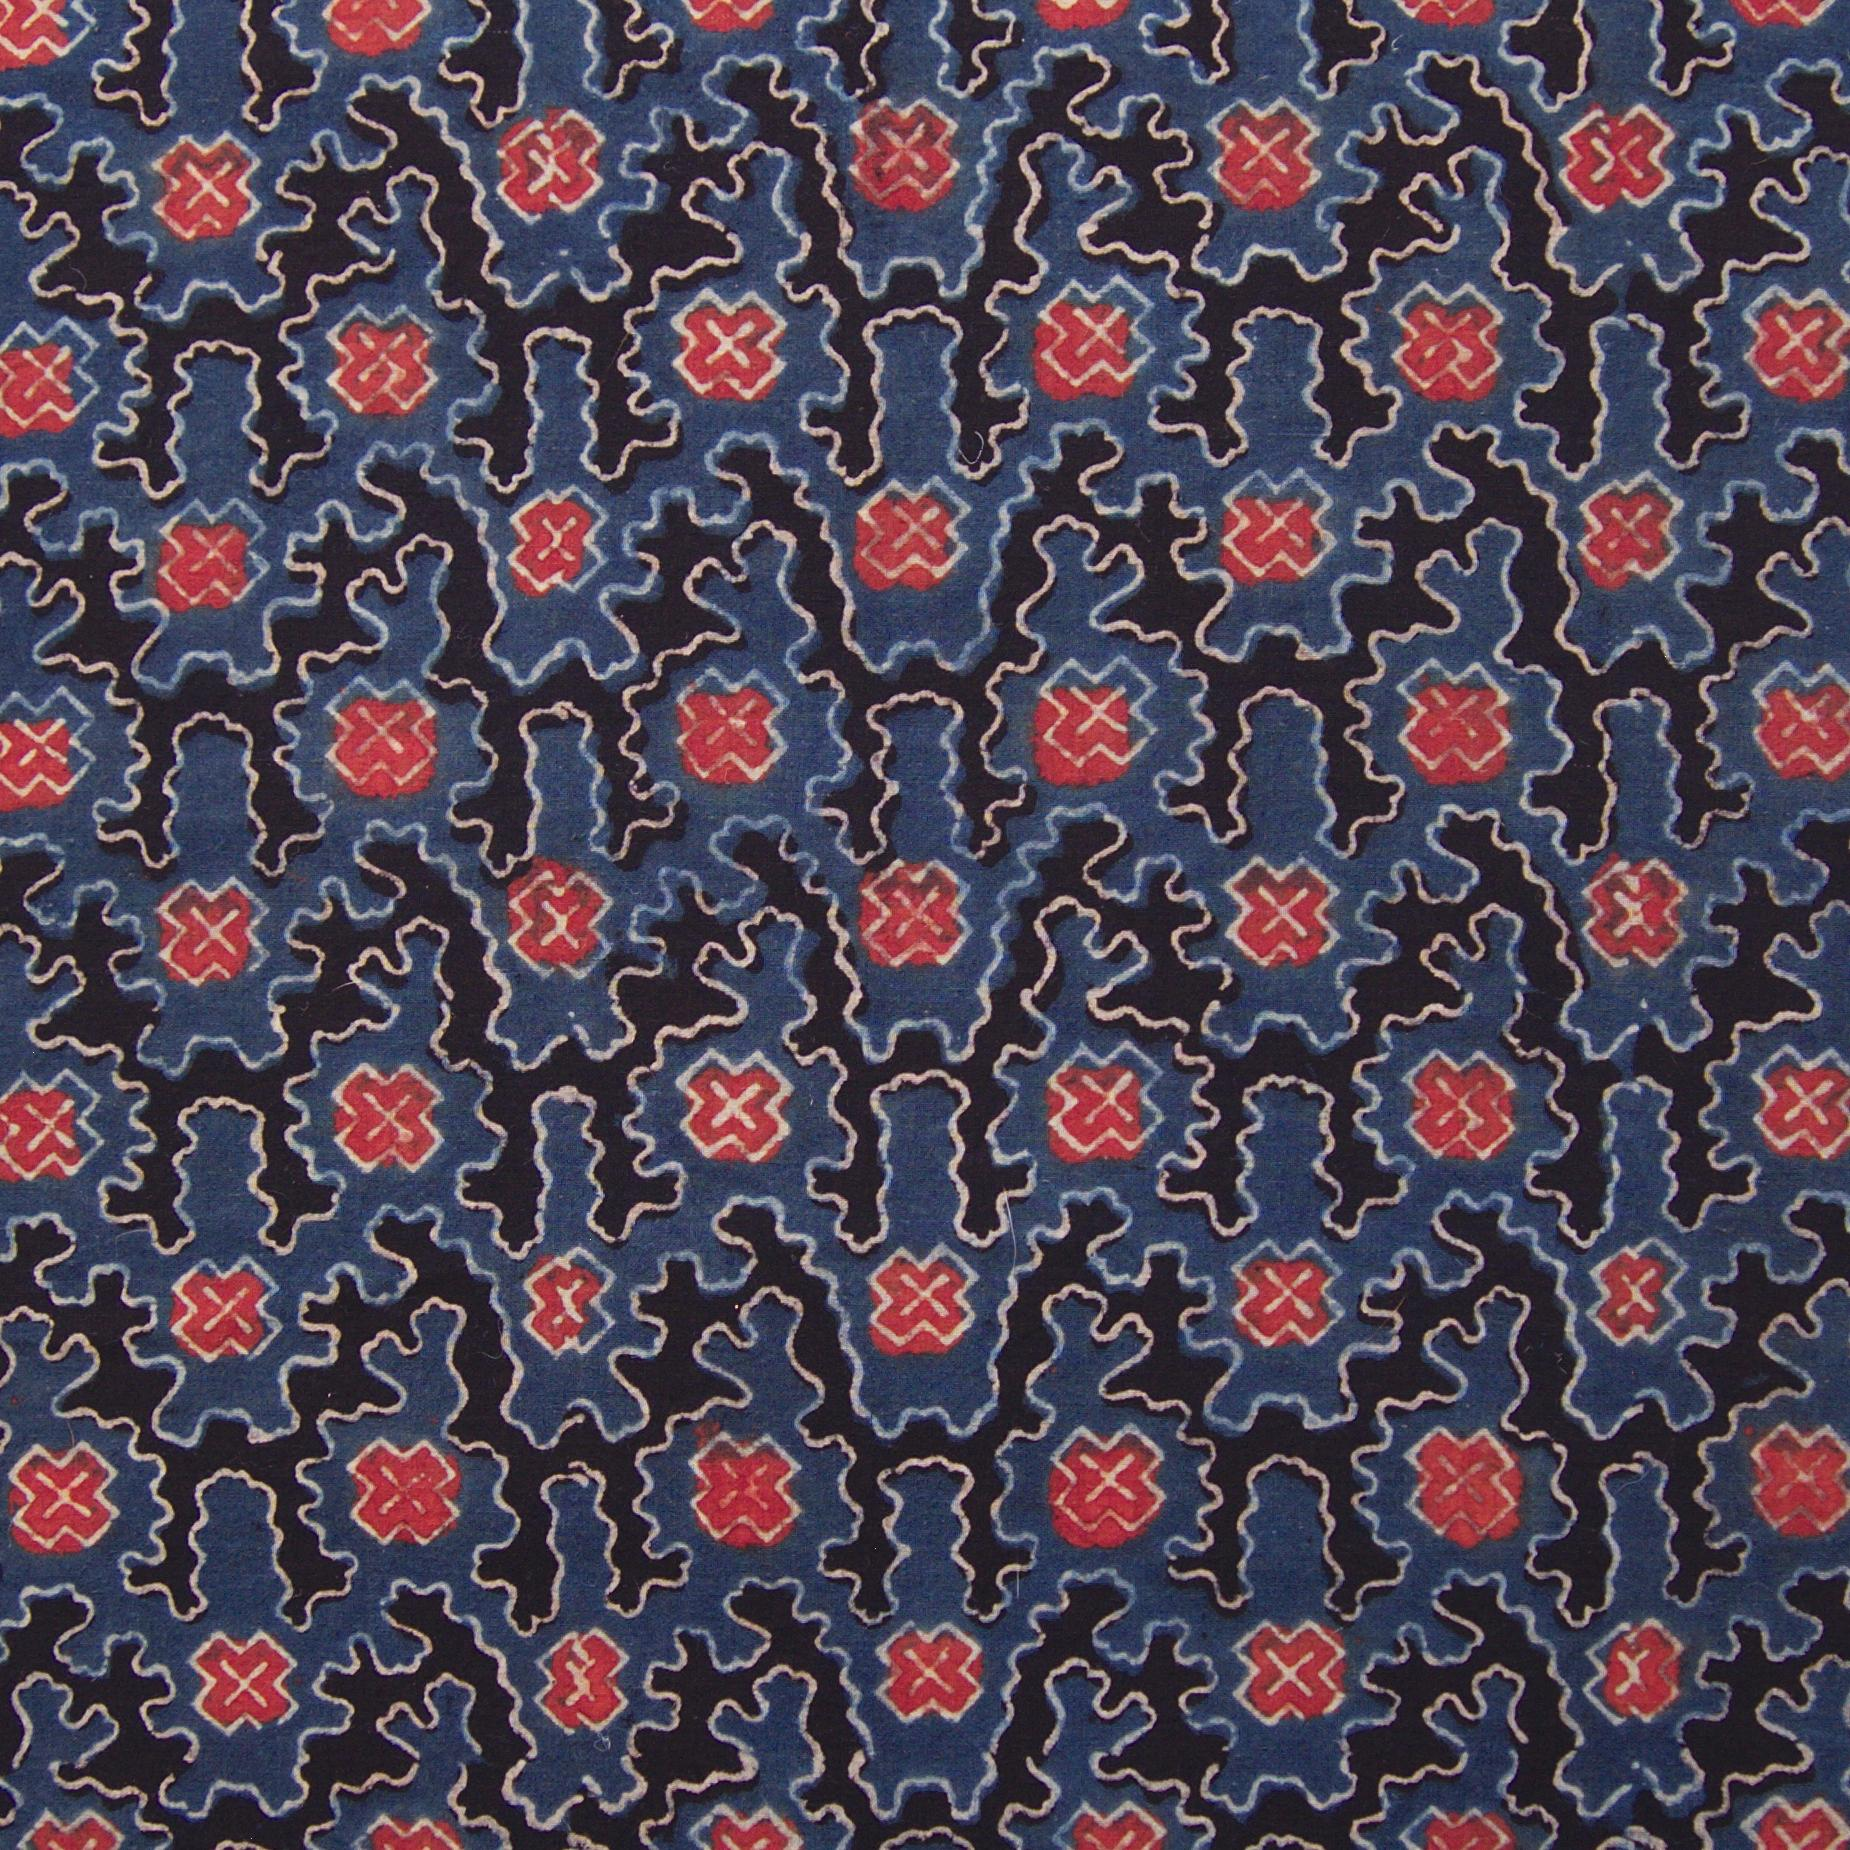 Block Printed Fabric, 100% Cotton, Ajrak Design: Indigo Blue Base, Black, Madder Red, White Cloud. Close Up